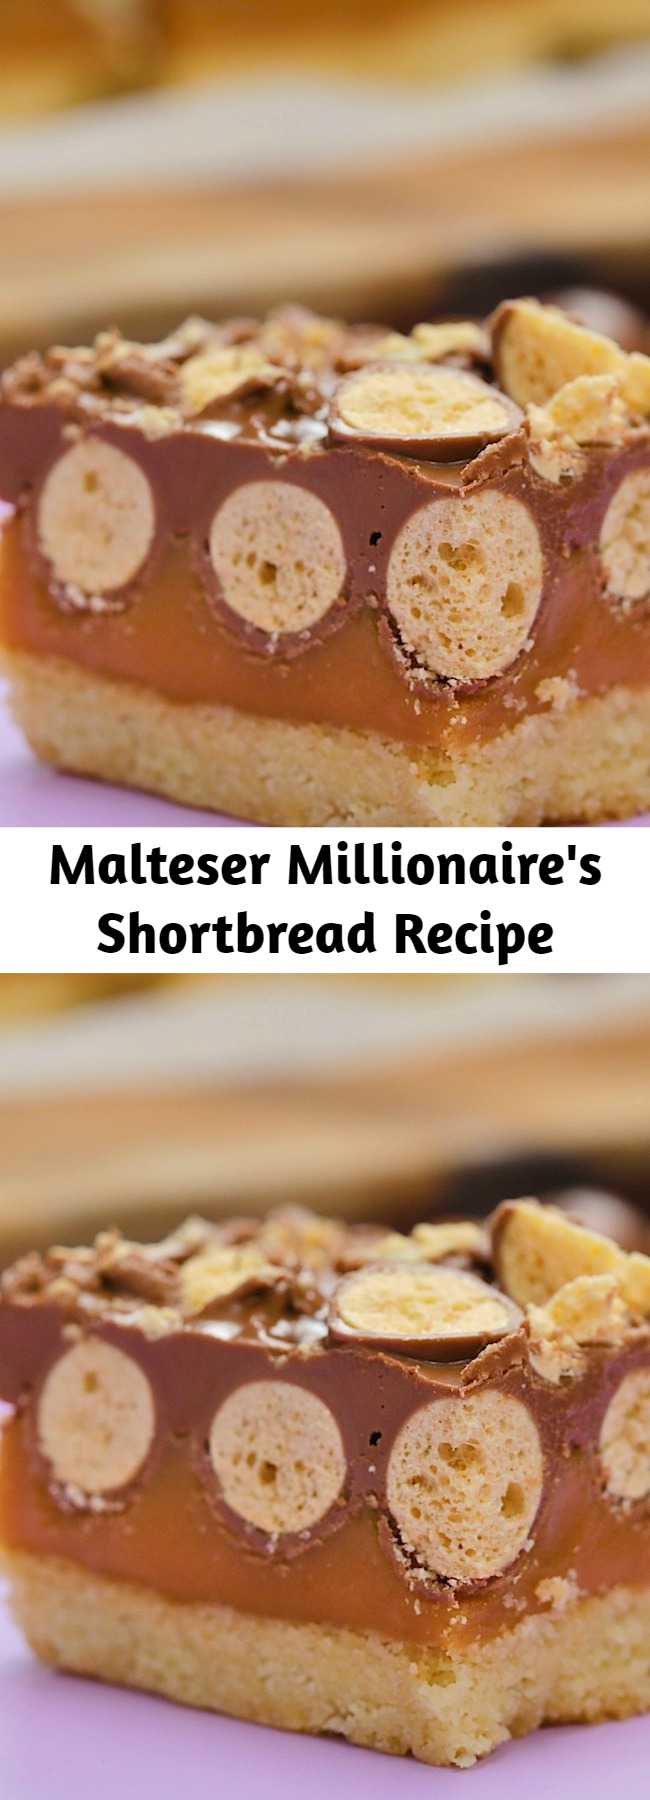 To all the Malteser fan out there, this is a next level Malteser Millionaire Shortbread!